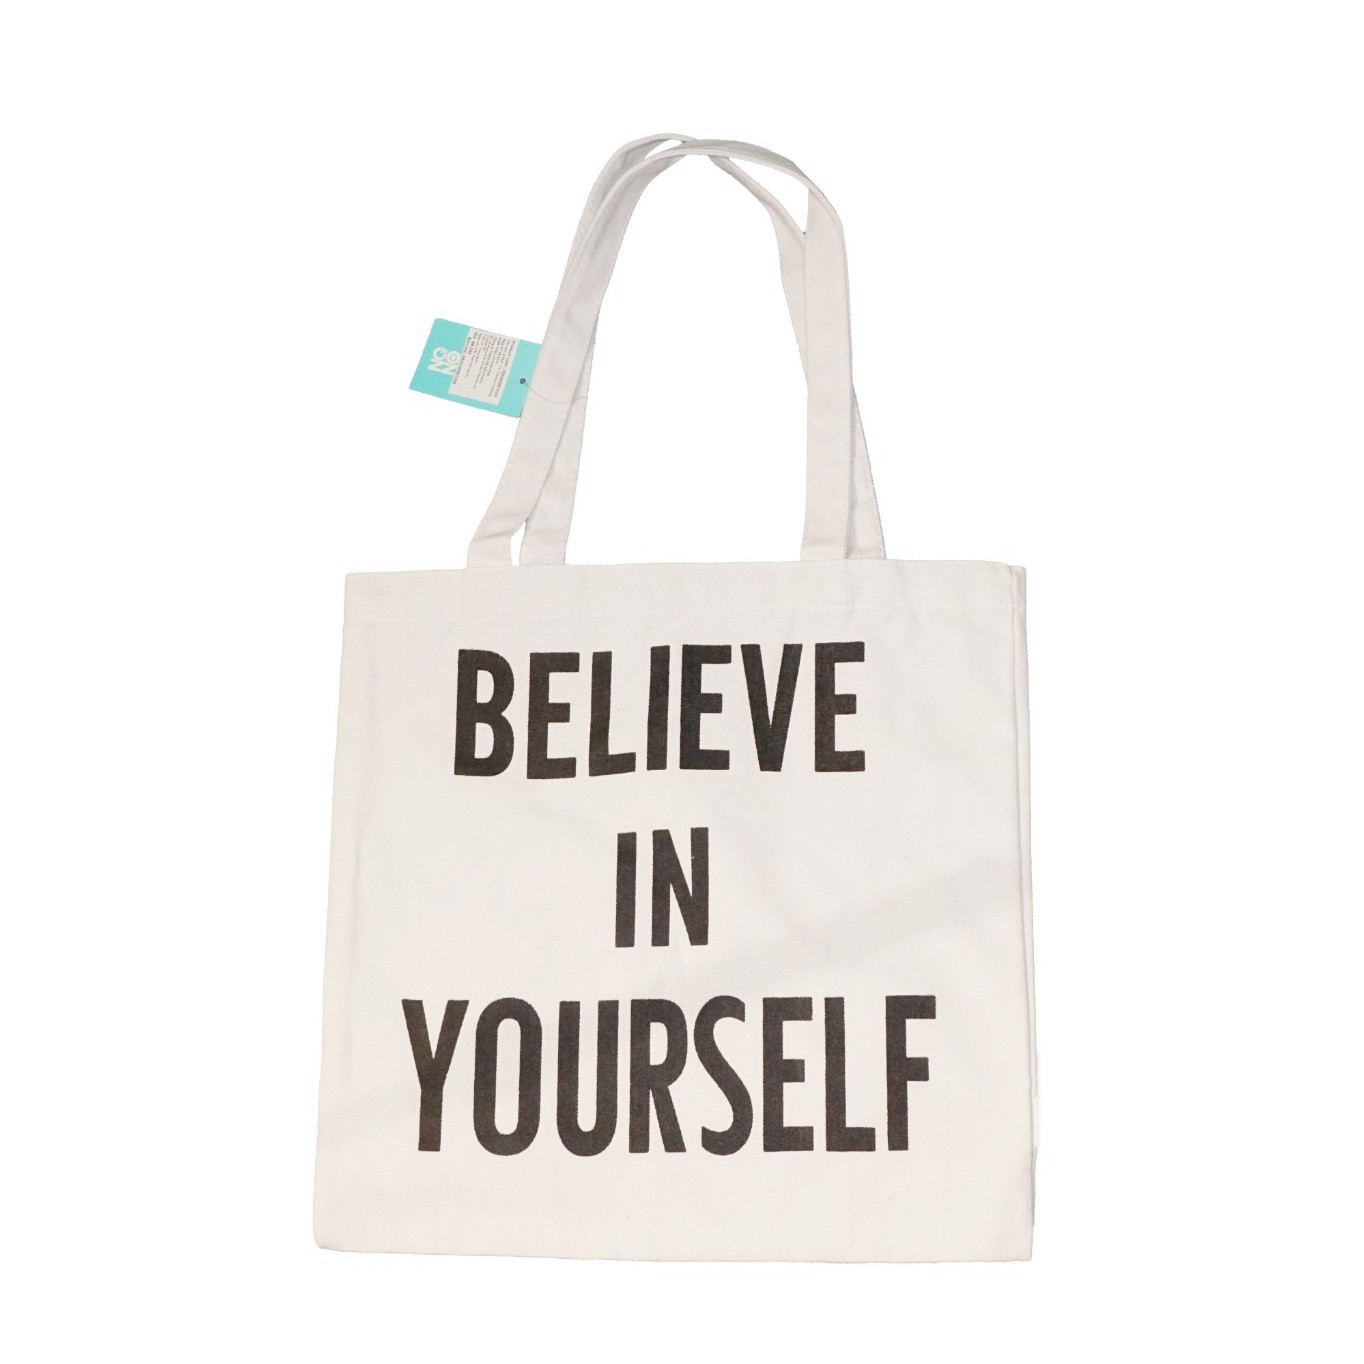 Túi canvas Believe In Yourself Trắng- 37*38.5cm O0202002C35